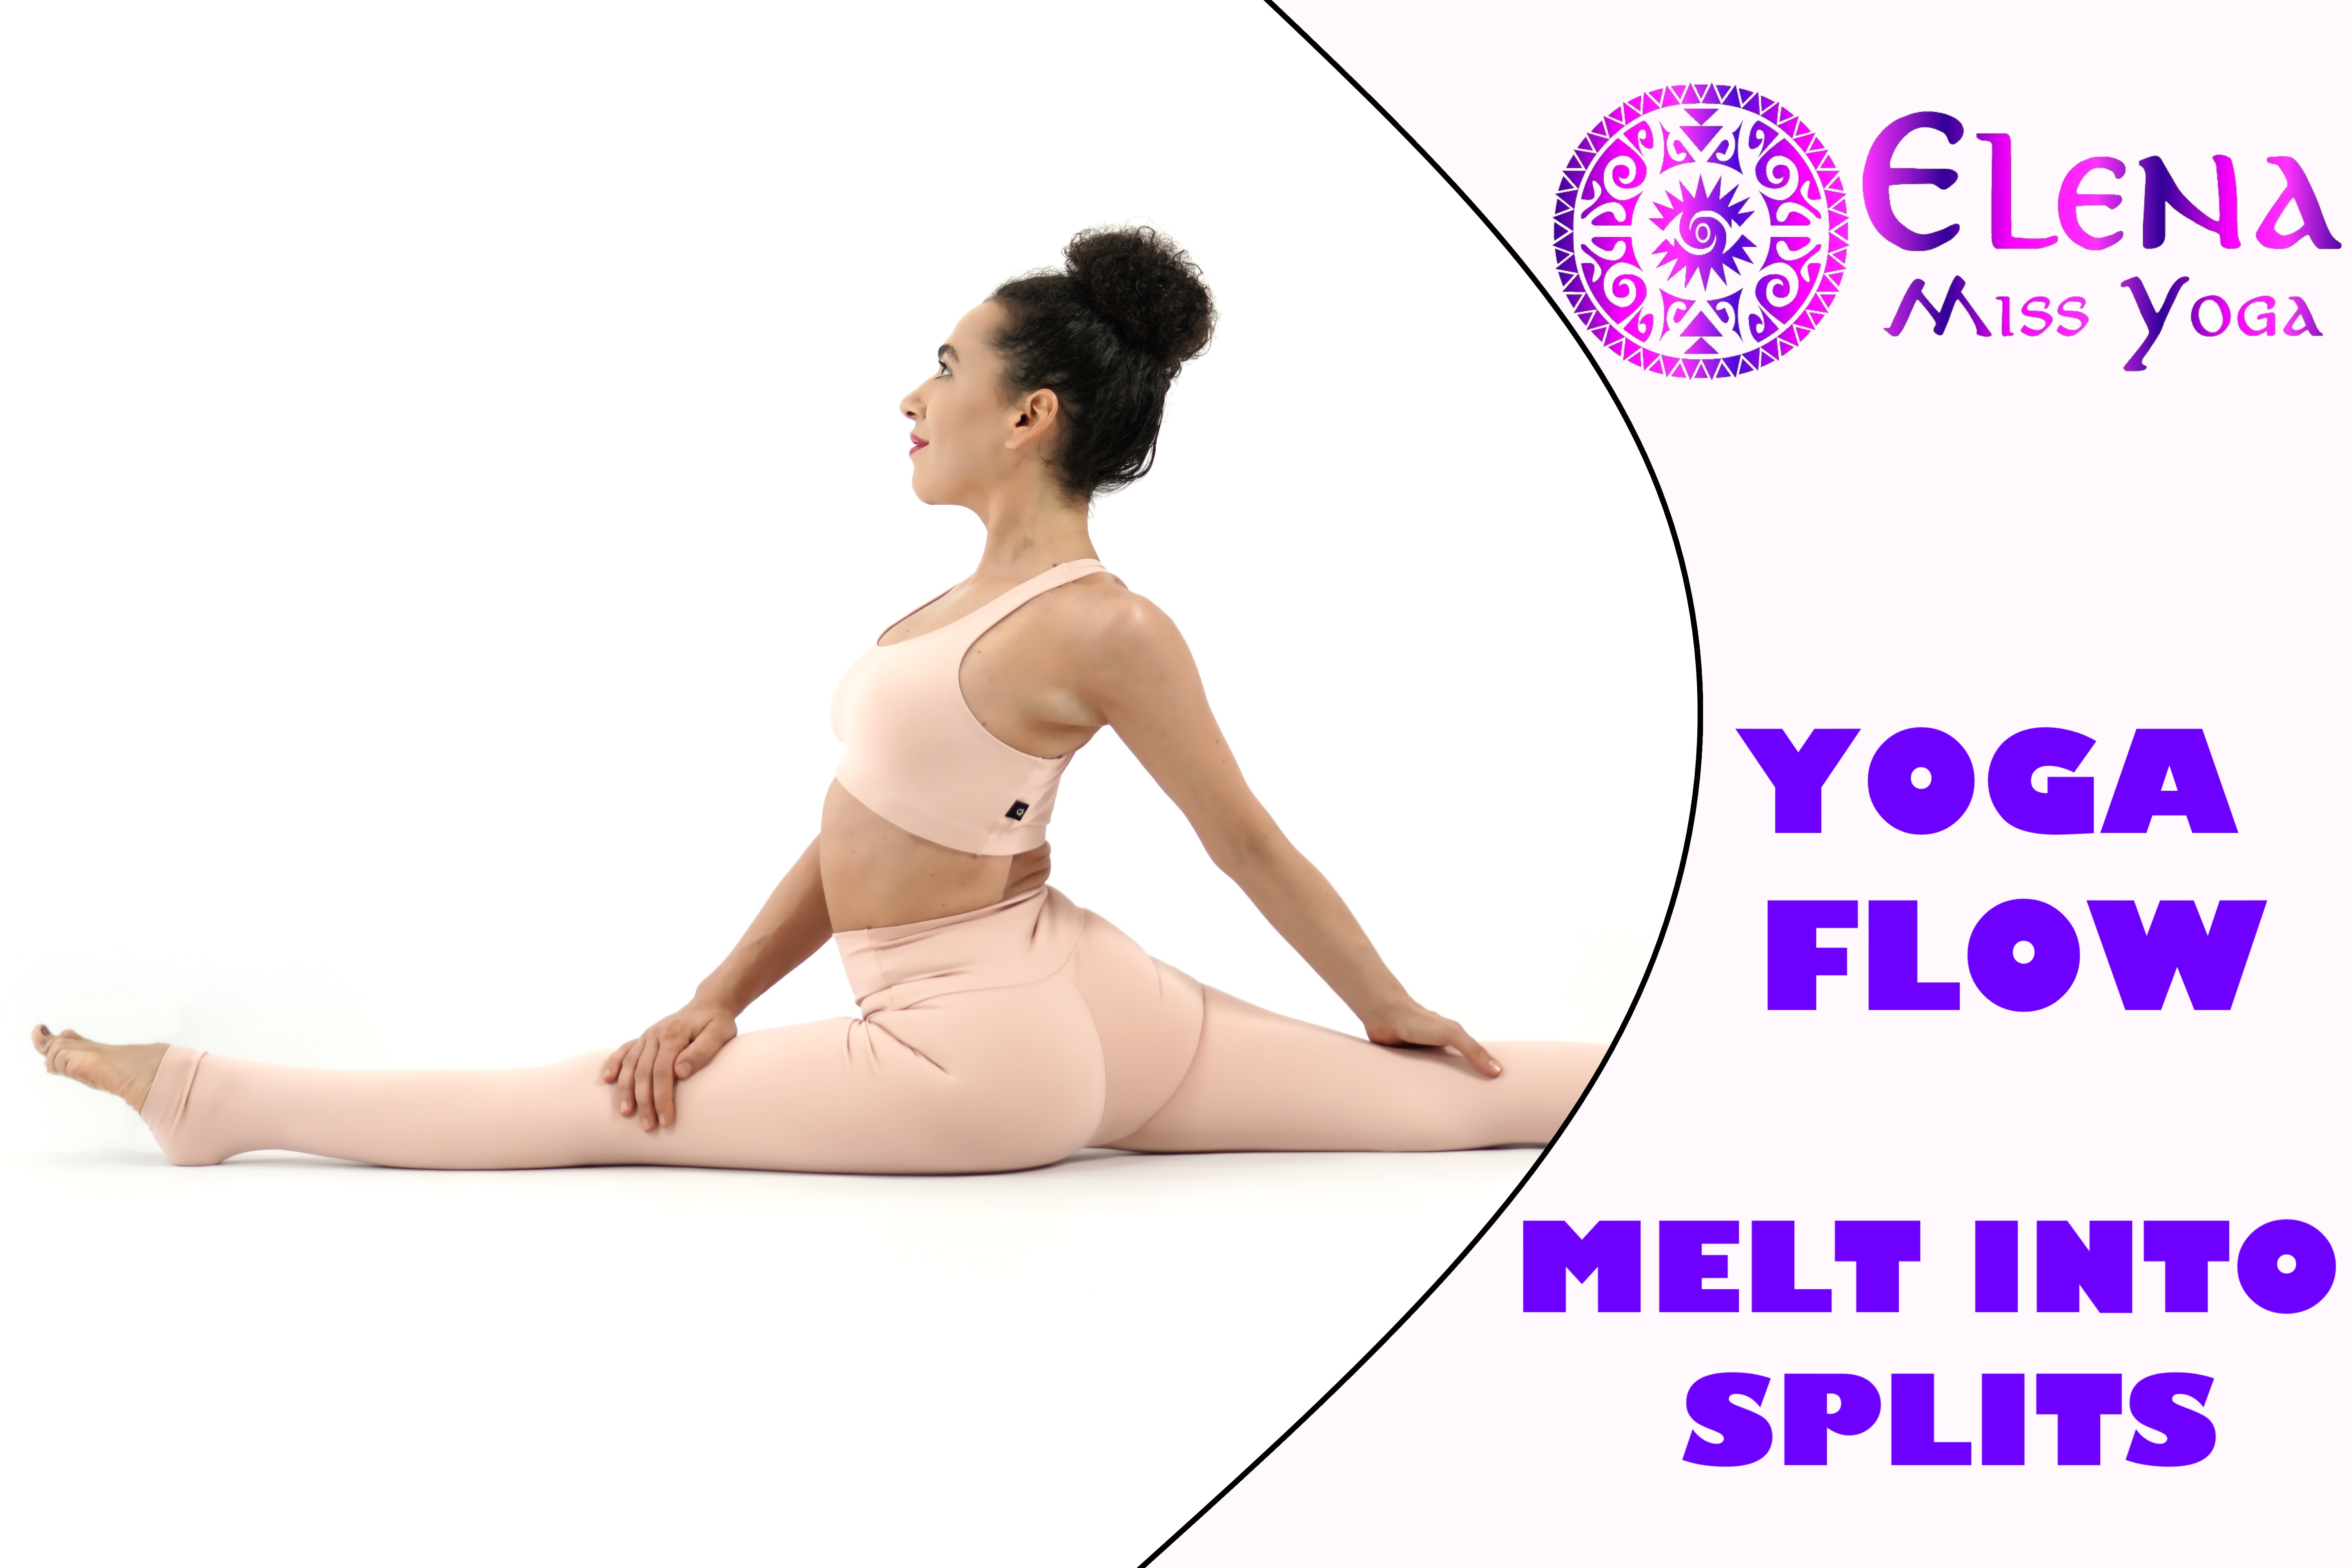 THE ULTIMATE SPLIT YOGA FLOW! HOW TO MELT INTO SPLIT